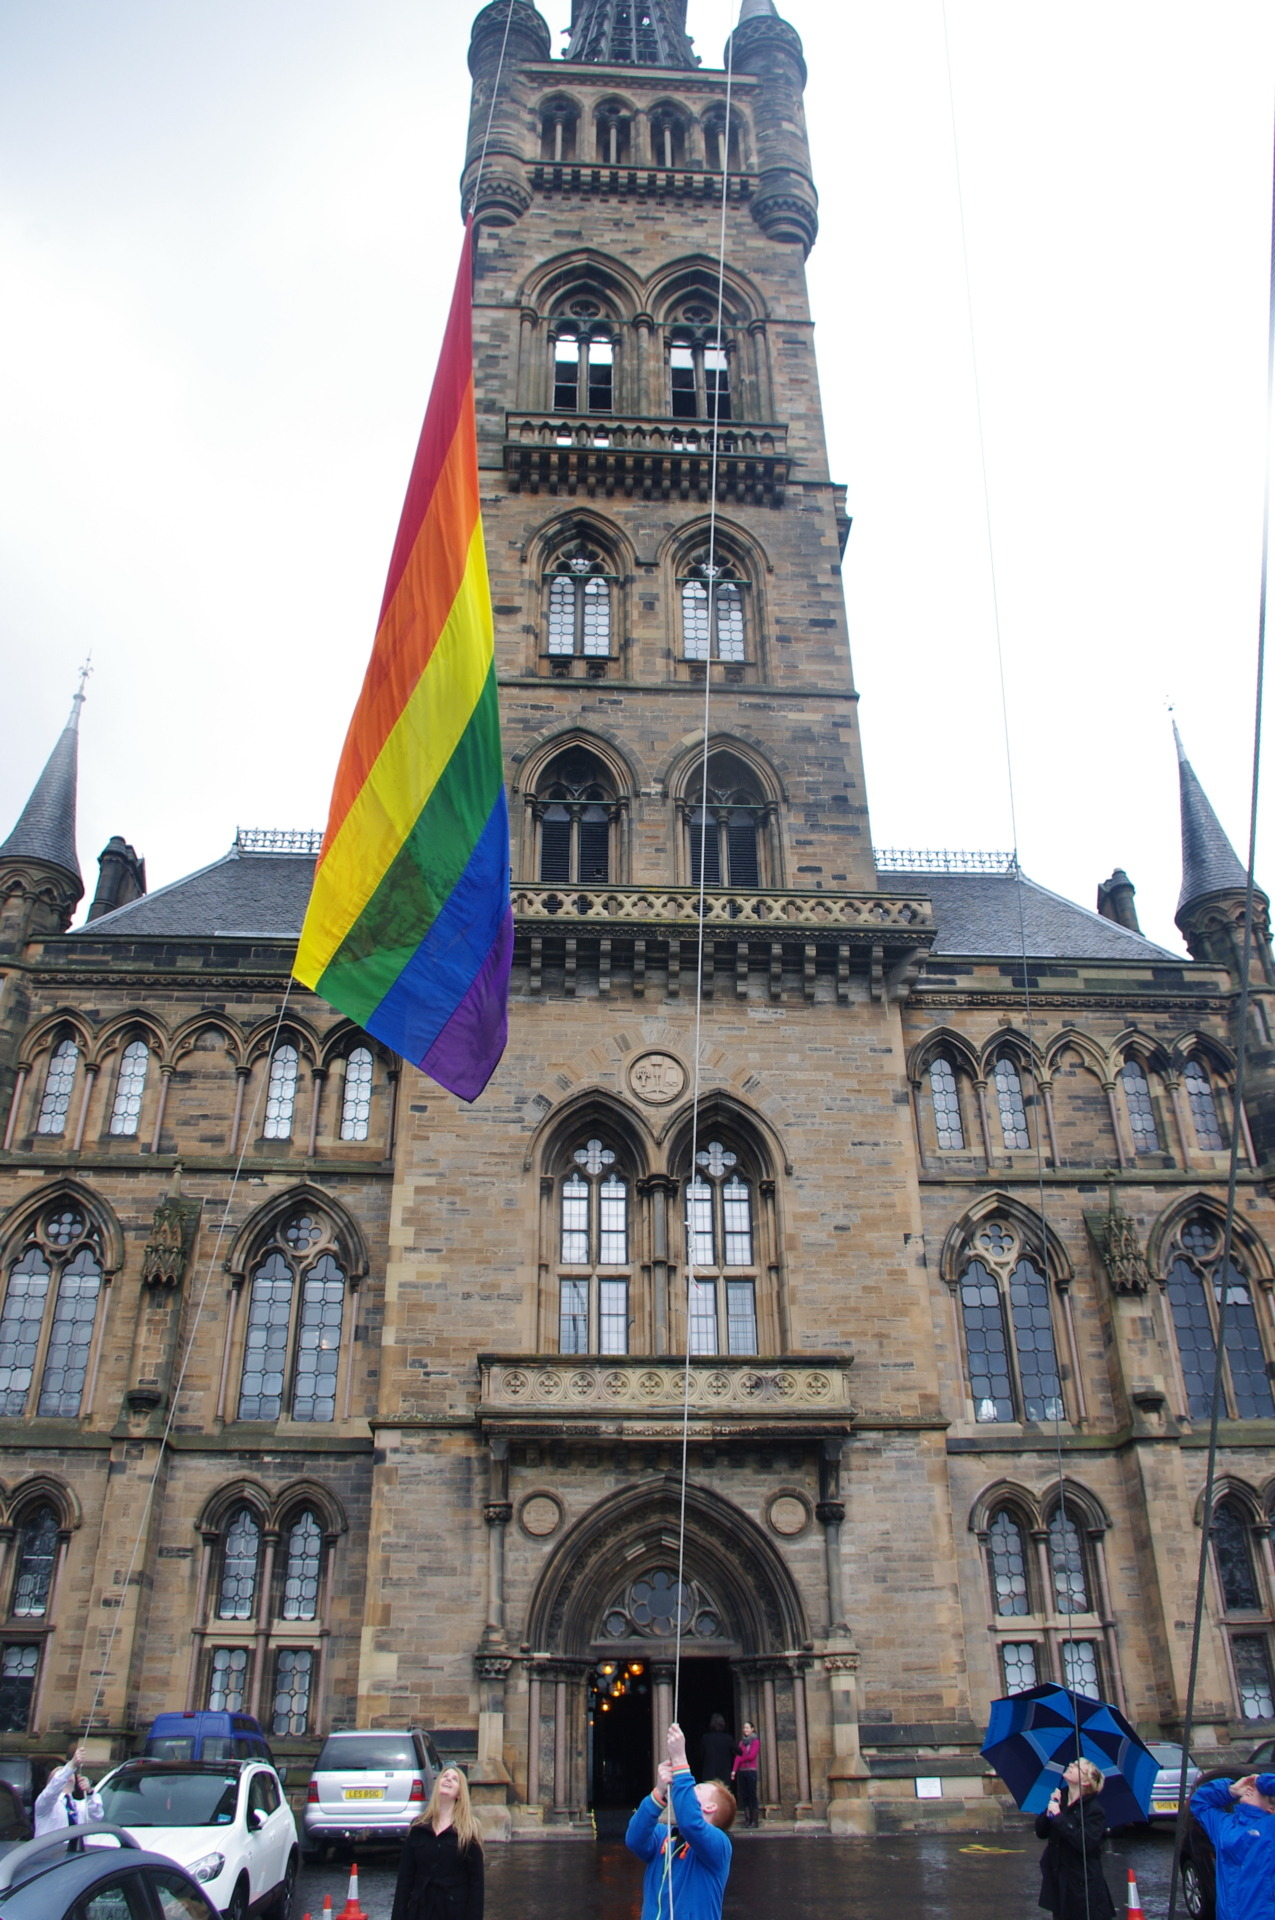 Snapped a few photos of the LGBT flag being raised on the South Front of Glasgow University this afternoon to mark International Day Against Homophobia and Transphobia (IDAHO). It's a great gesture by such a prominent institution, and the flag will be visible for miles from Glasgow University's vantage point on the hill.